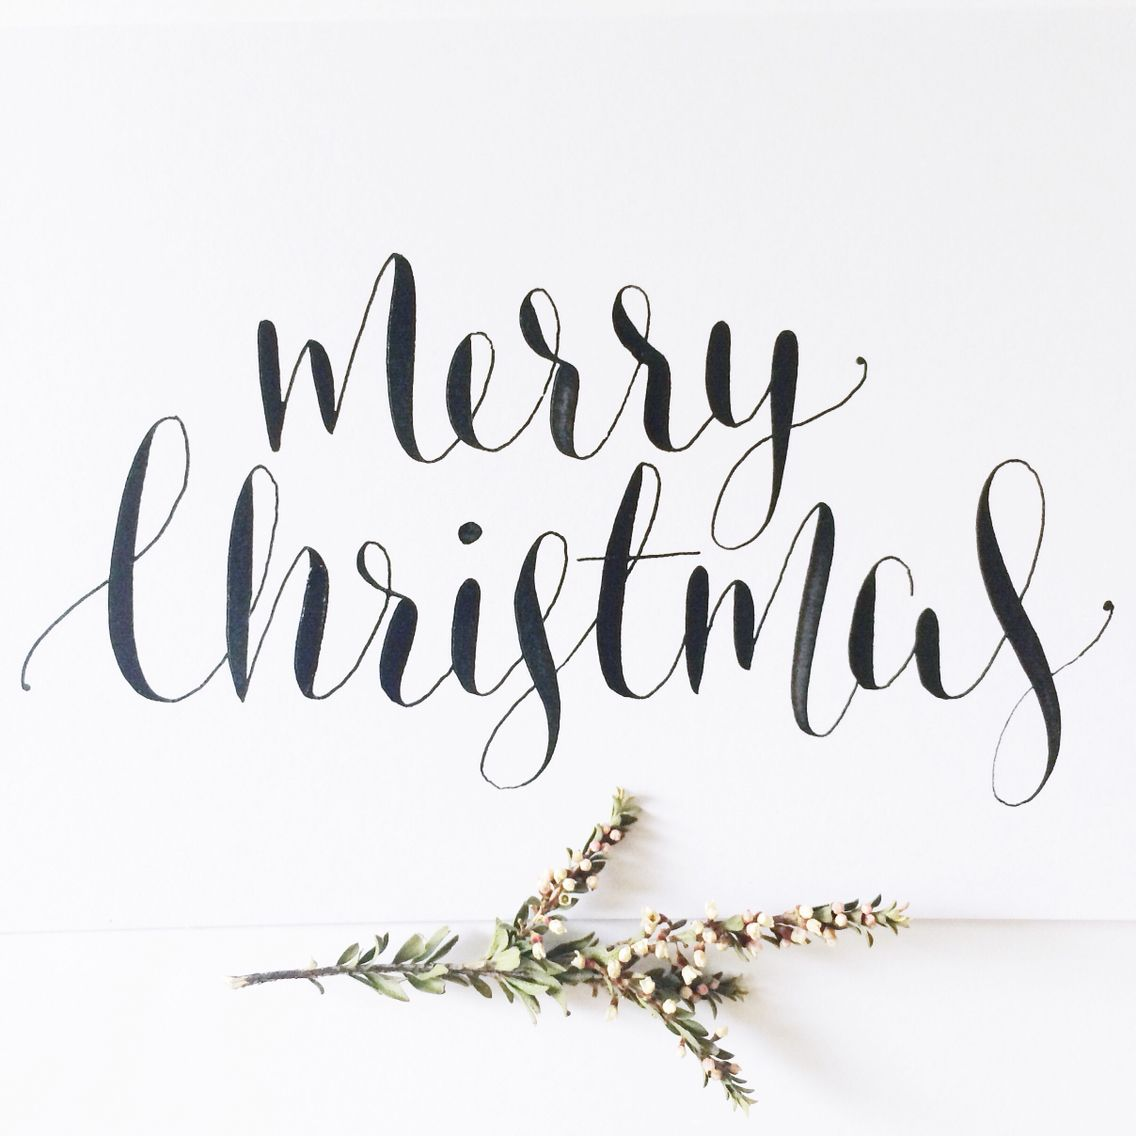 Christmas Calligraphy.Merry Christmas Calligraphy Www Willowandink Com Au